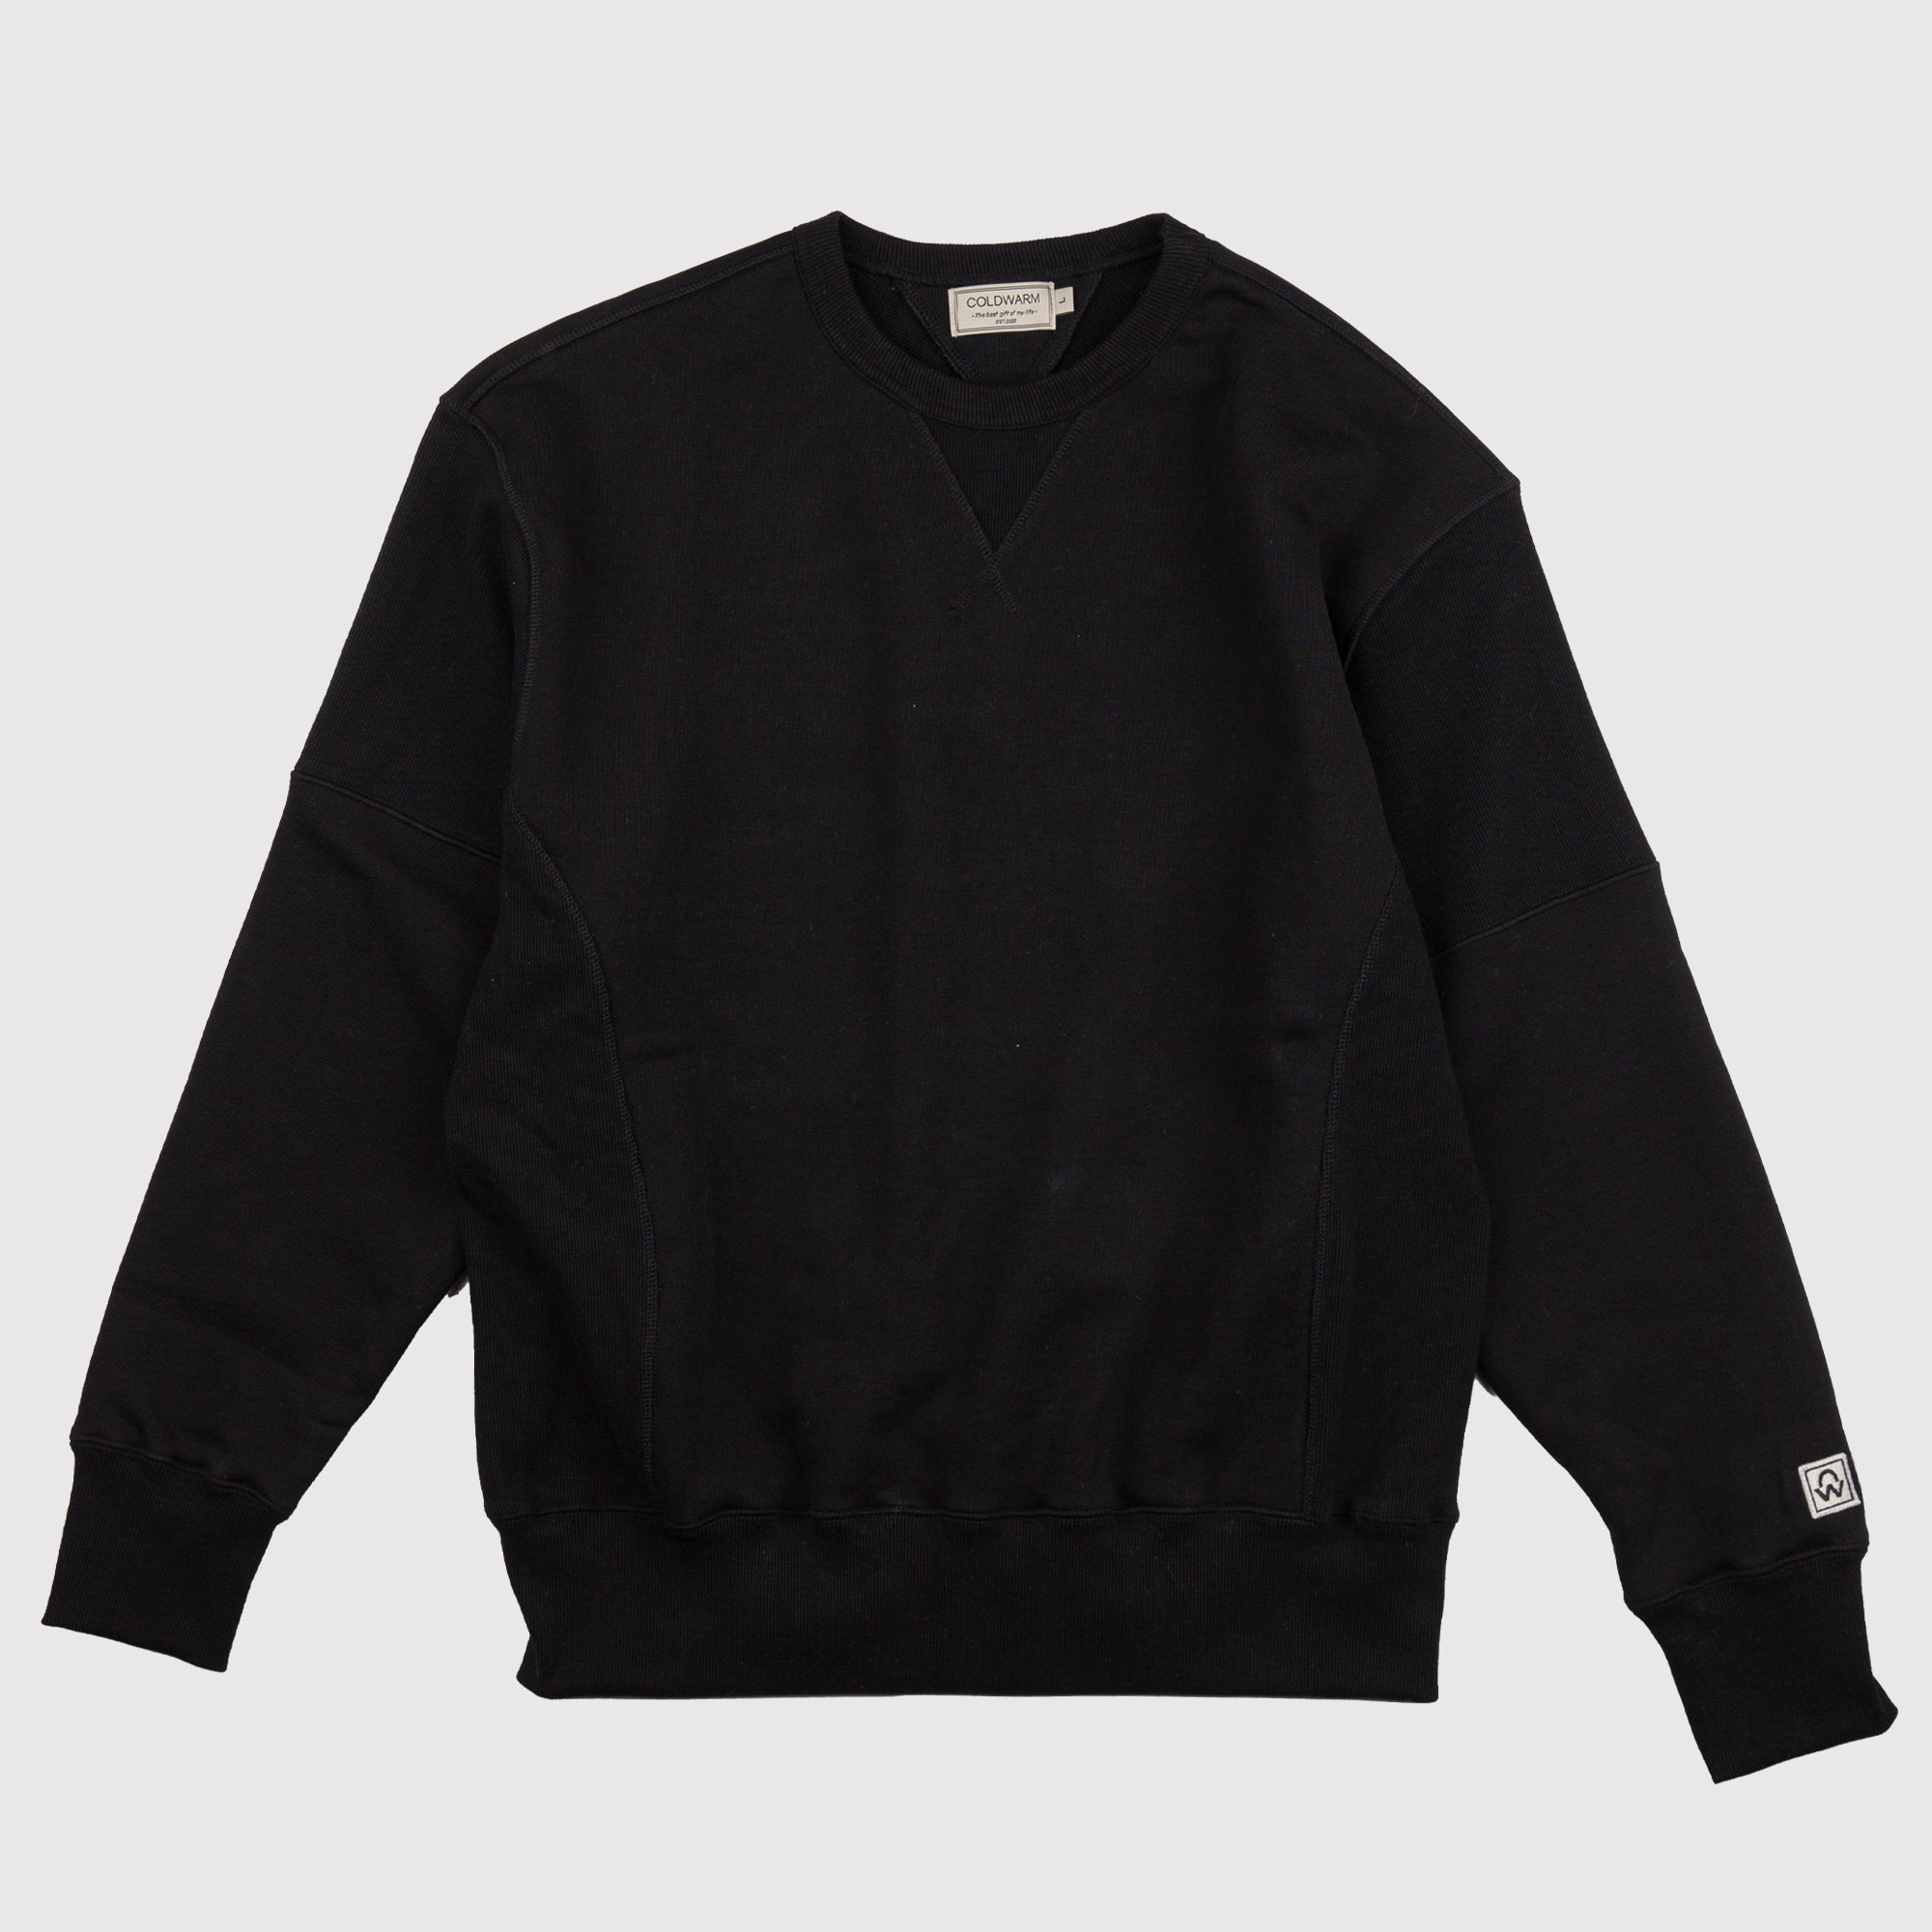 -[COLDWARM] Reversible SWEAT SHIRT - BLACK